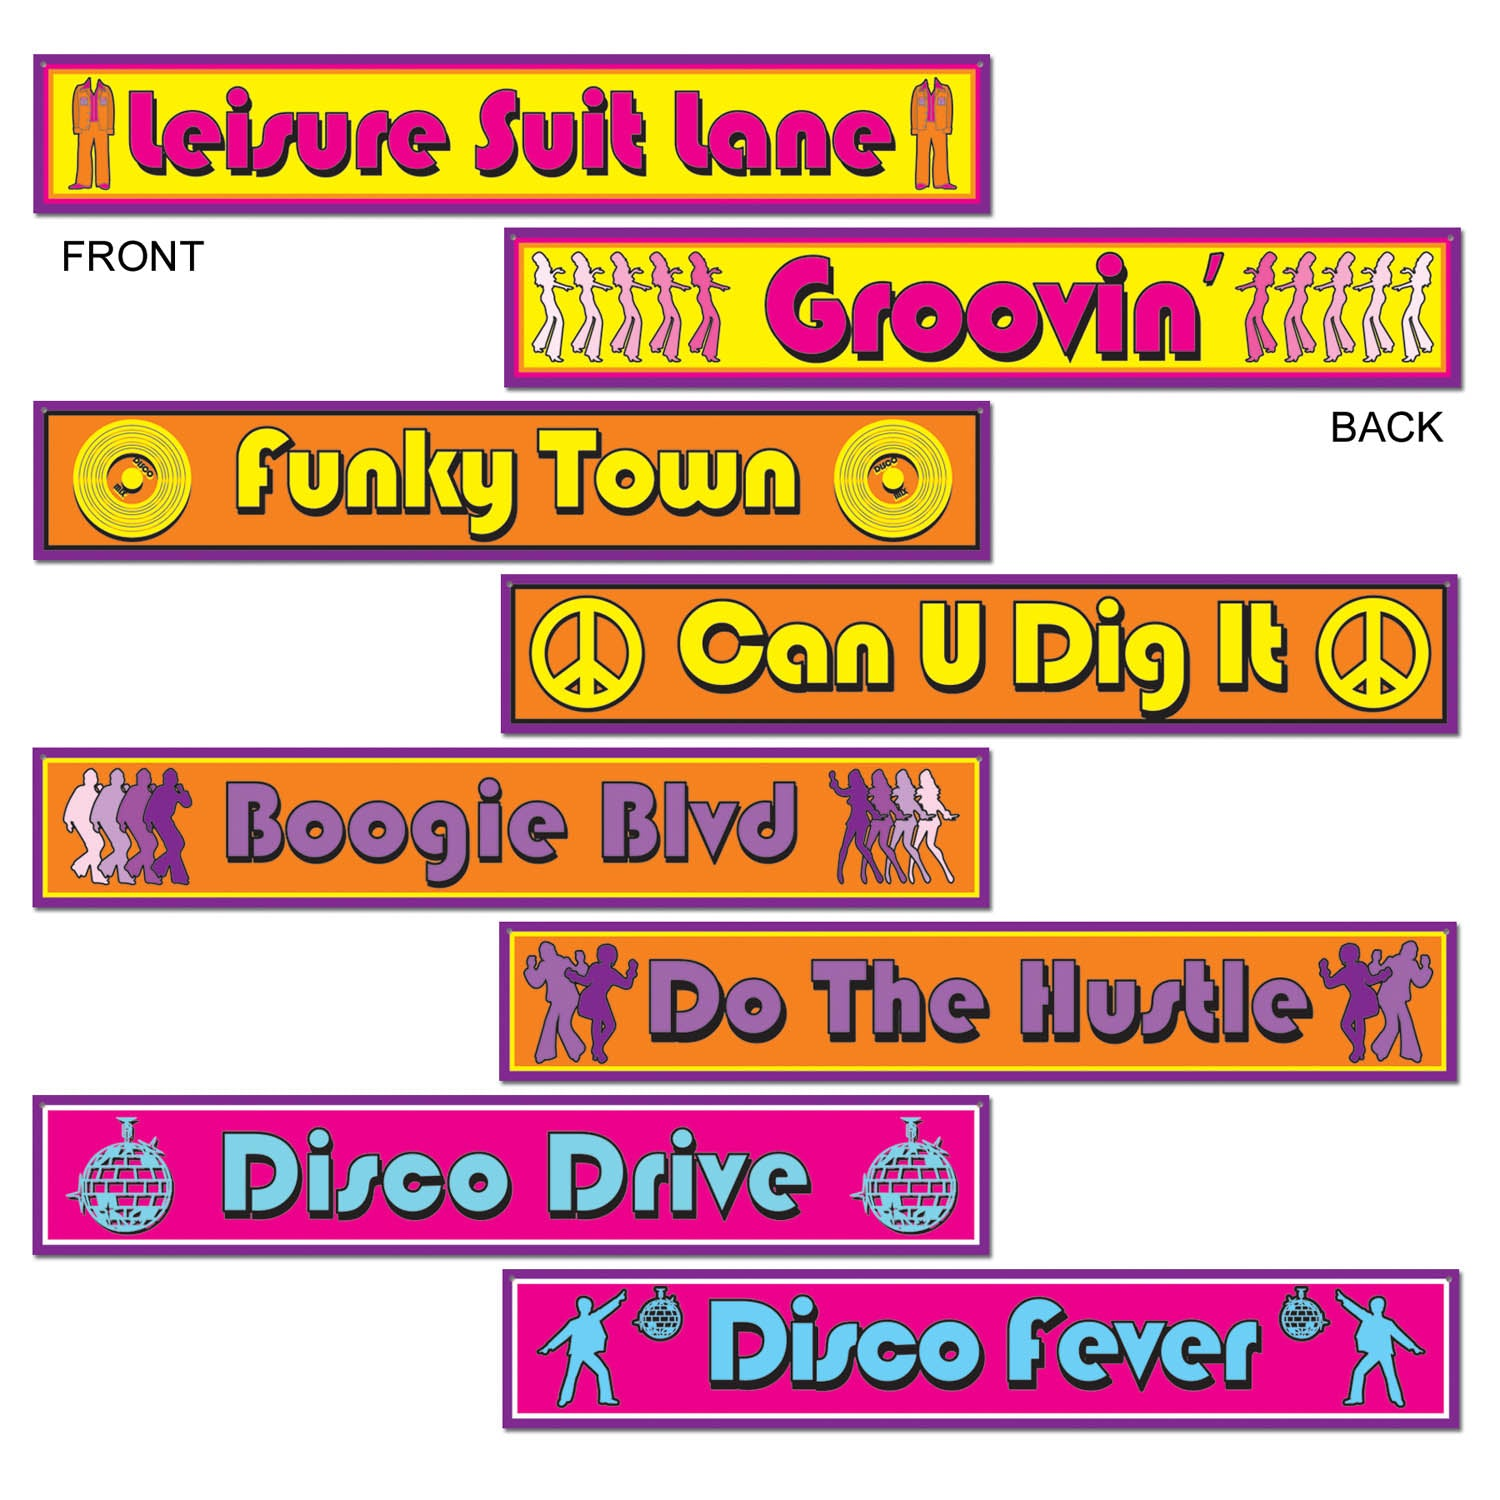 Disco Street Sign Cardboard Cutouts 10cm x61cm 4pk - Party Savers